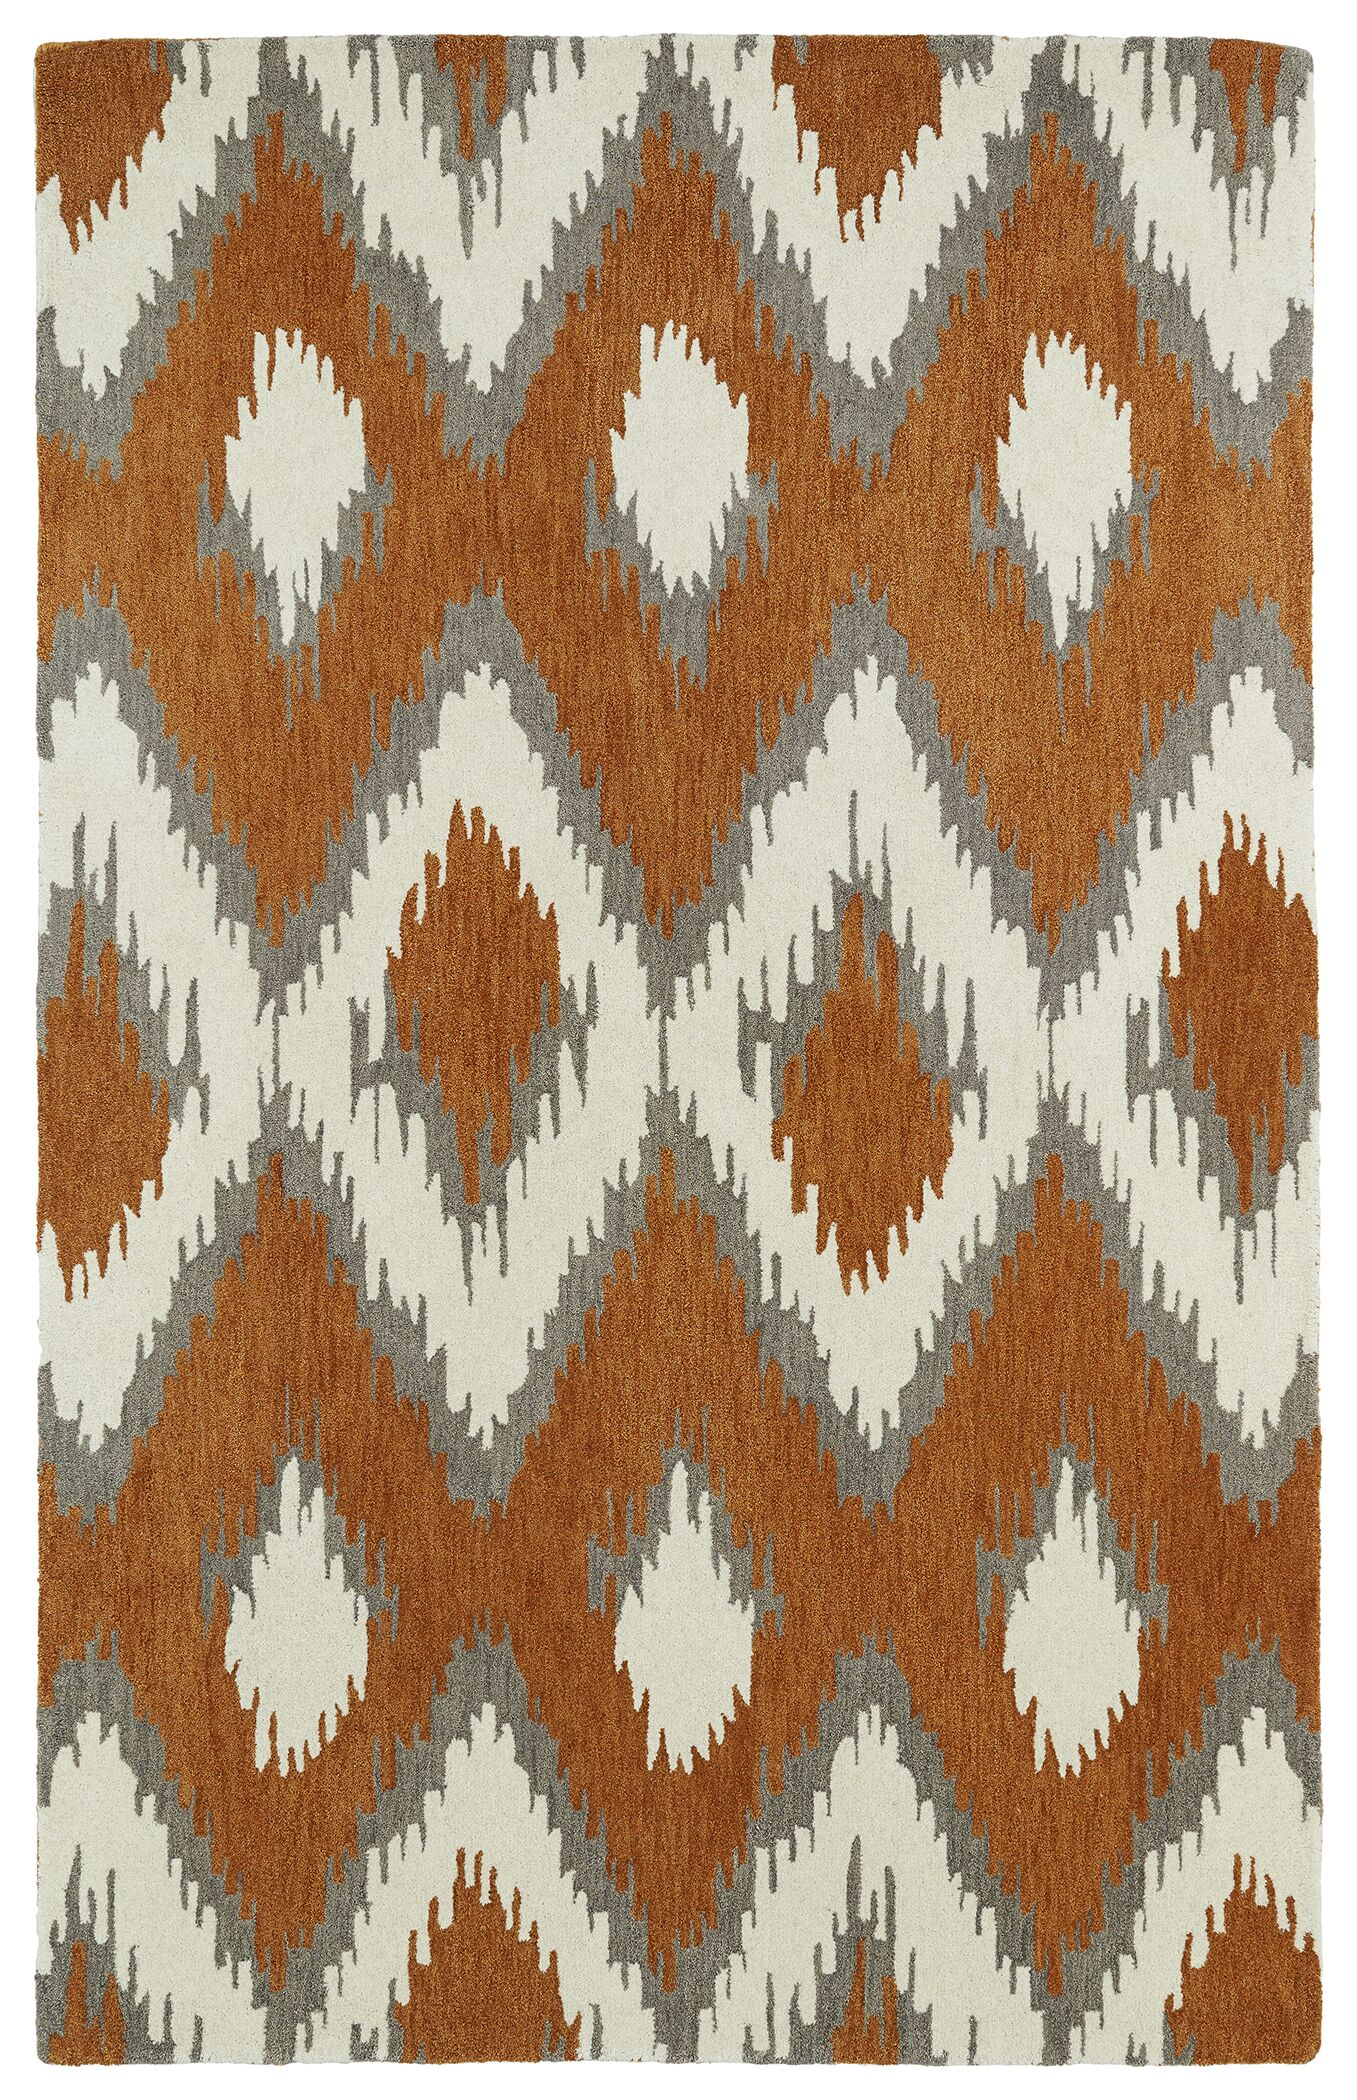 Powers Lake Paprika/White Area Rug Rug Size: Rectangle 9' x 12'